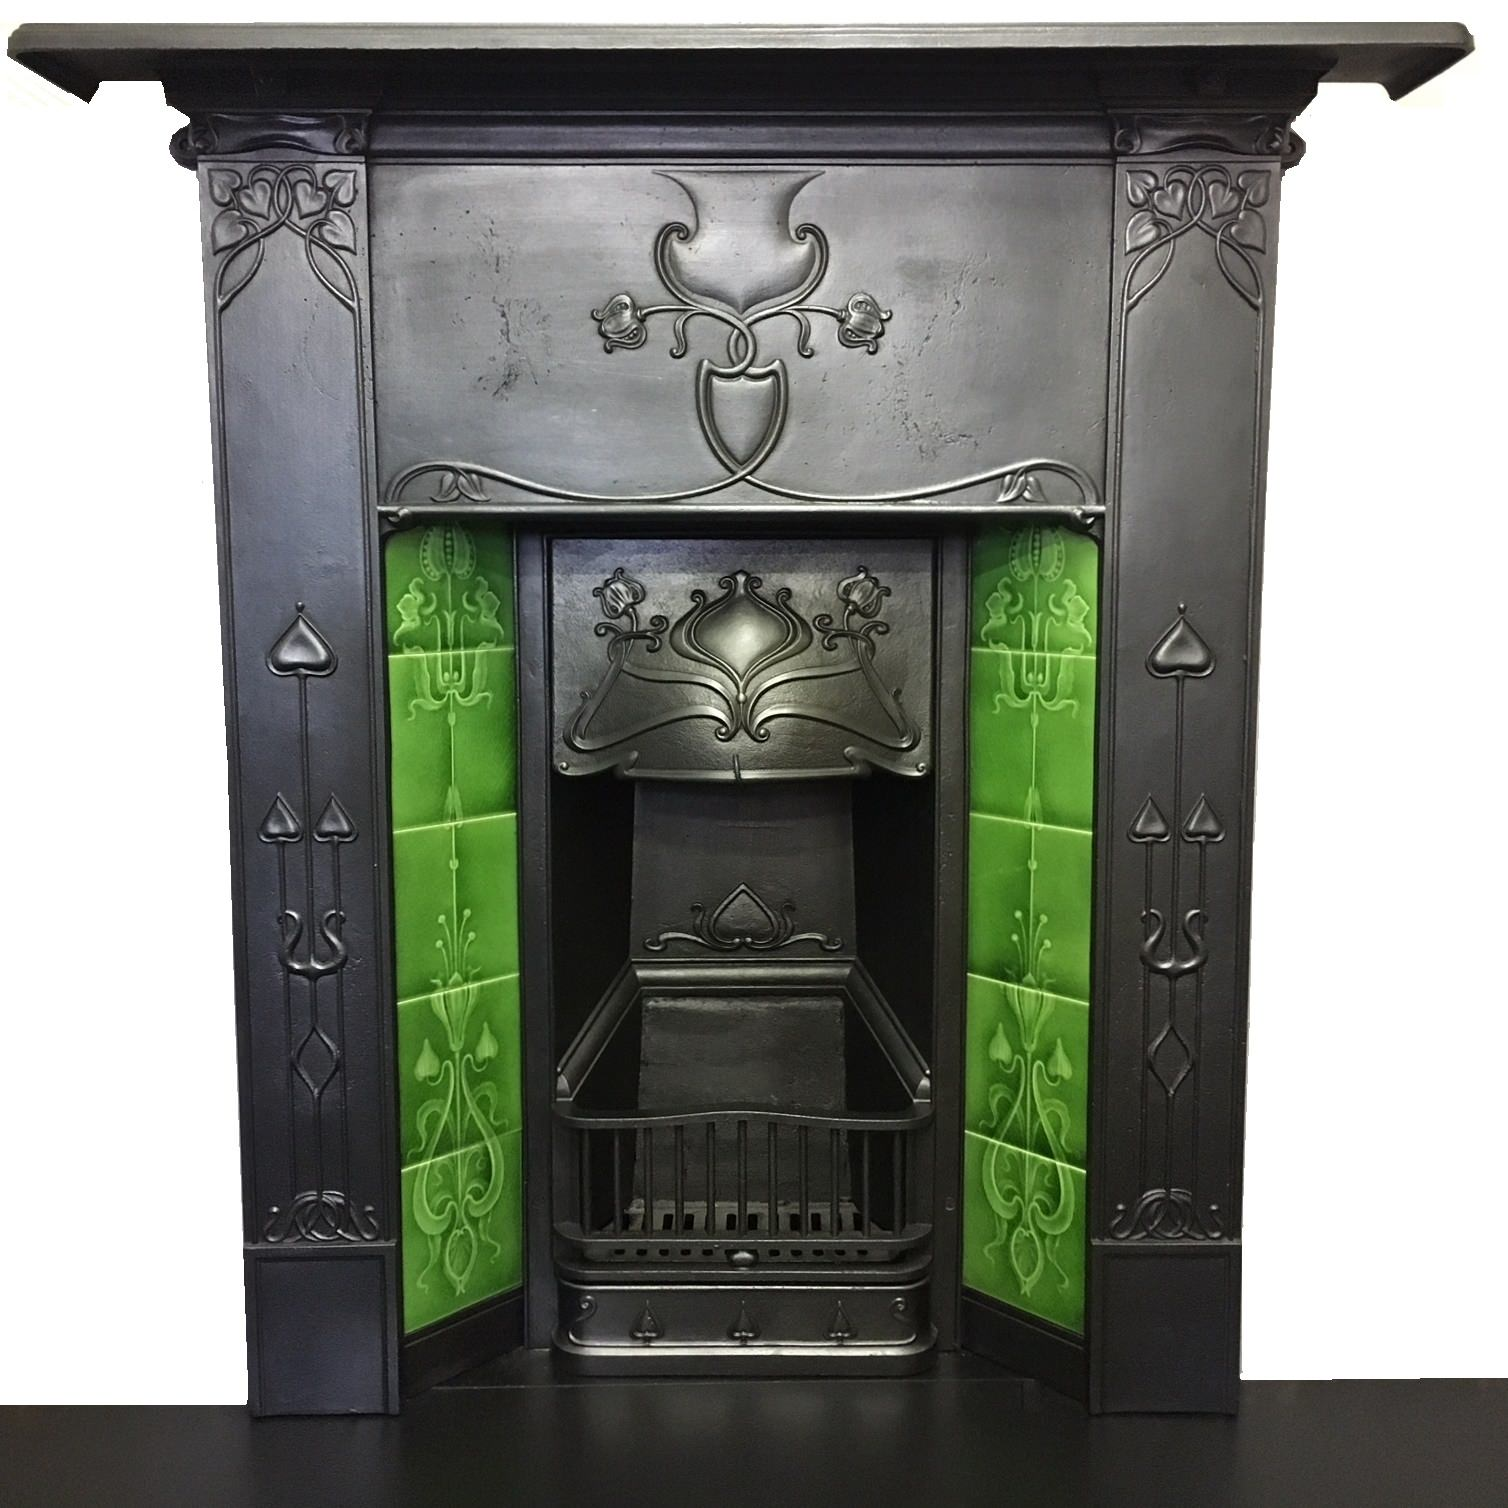 Antique Art Nouveau fireplace